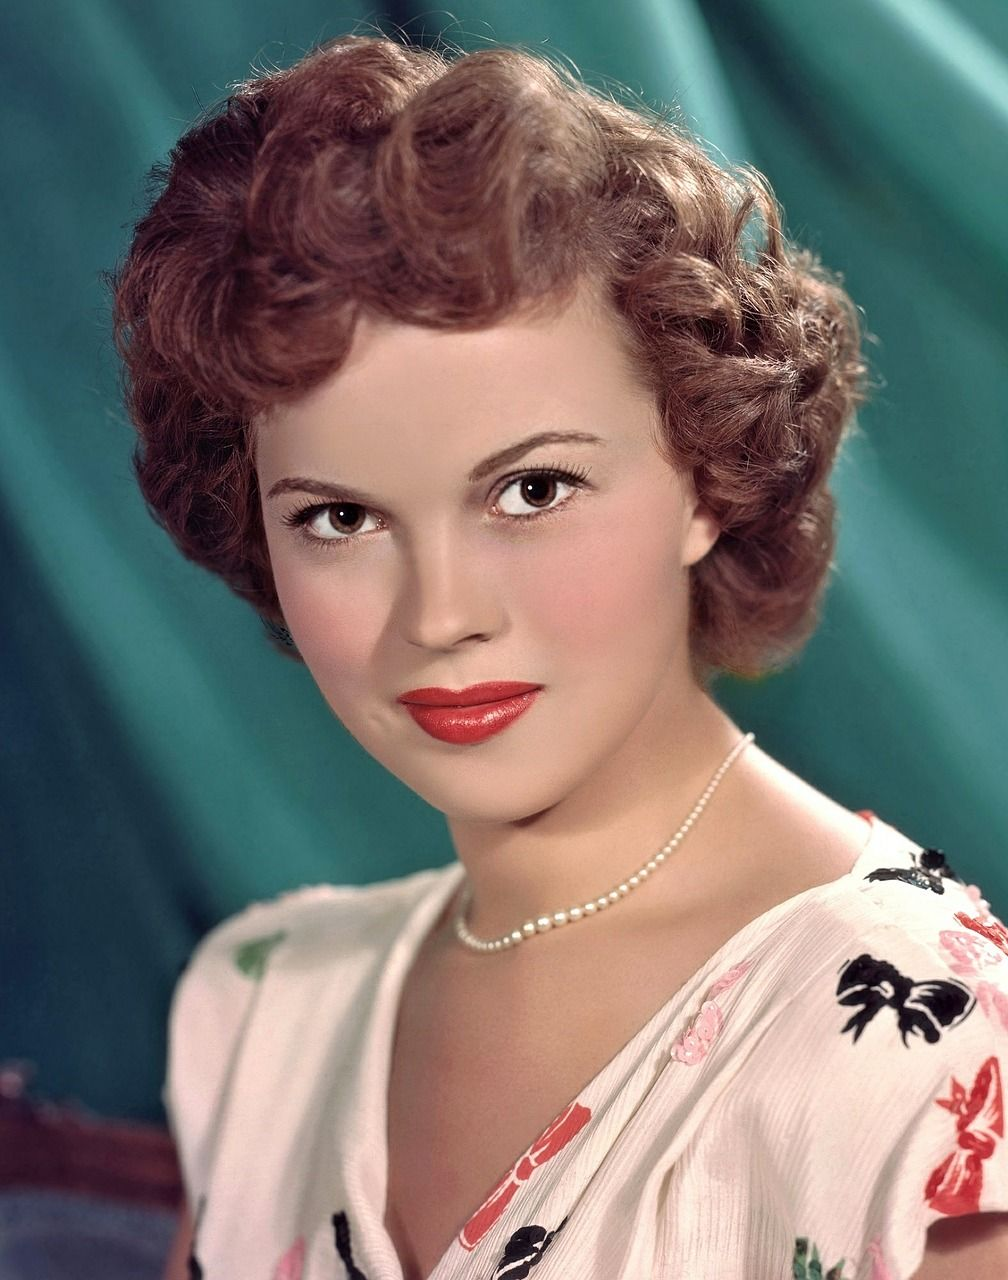 shirley temple ann es 40 ann es 50 actrice r tro collier de perle maquillage vintage. Black Bedroom Furniture Sets. Home Design Ideas